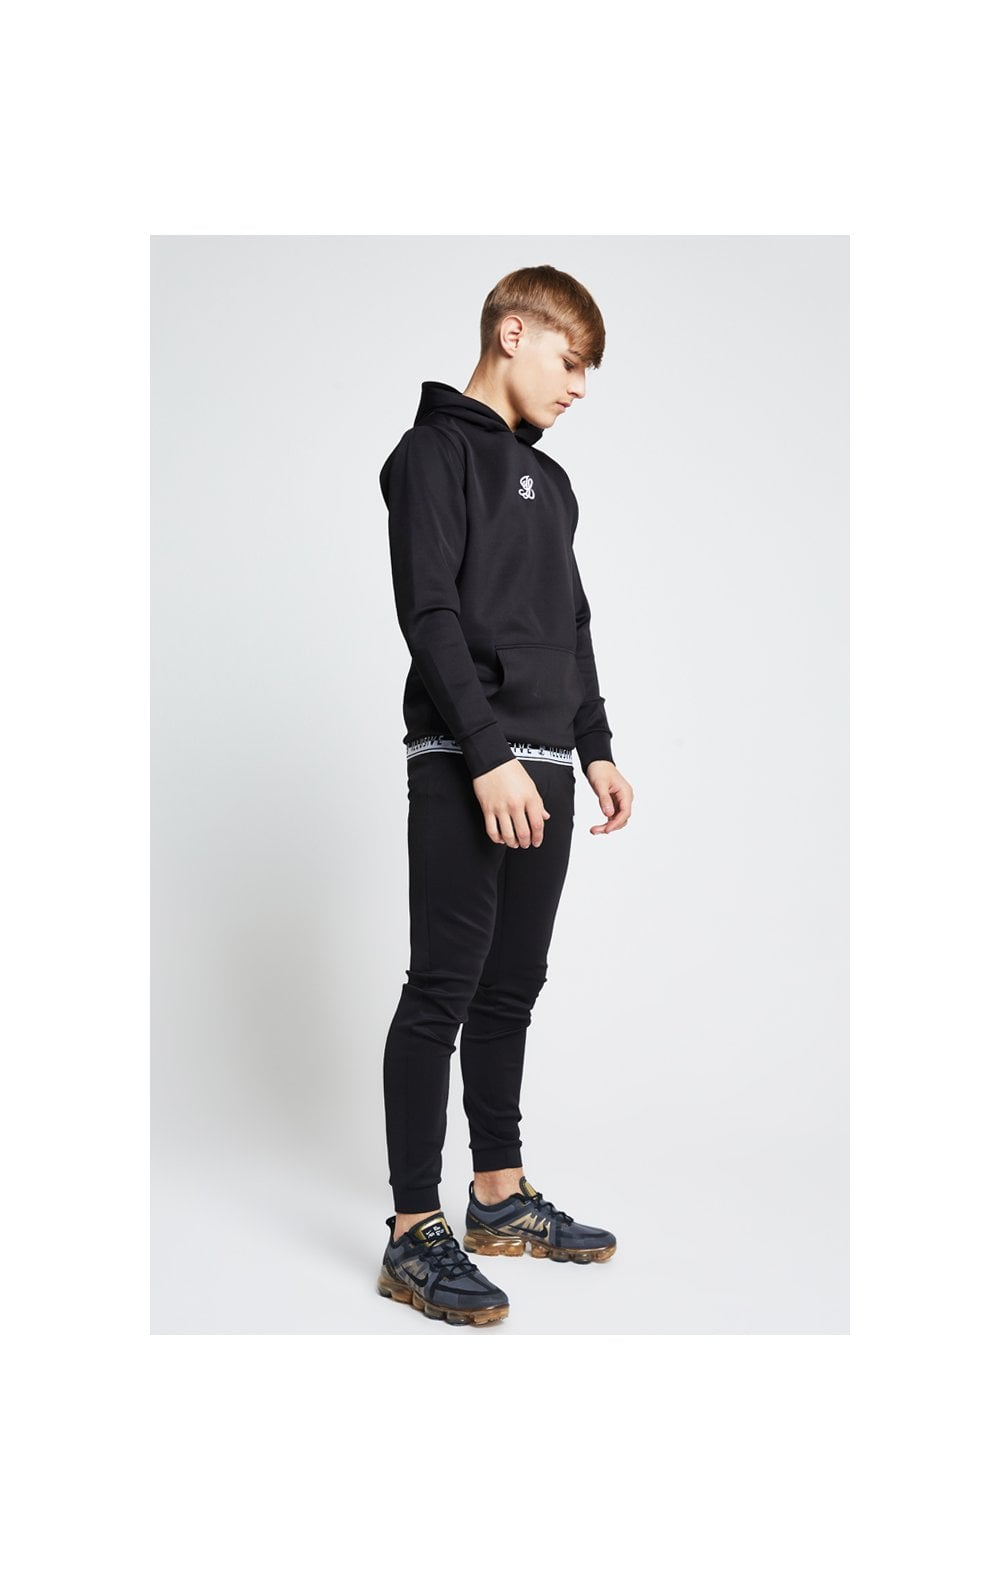 Illusive London Taped Overhead Hoodie - Black (3)